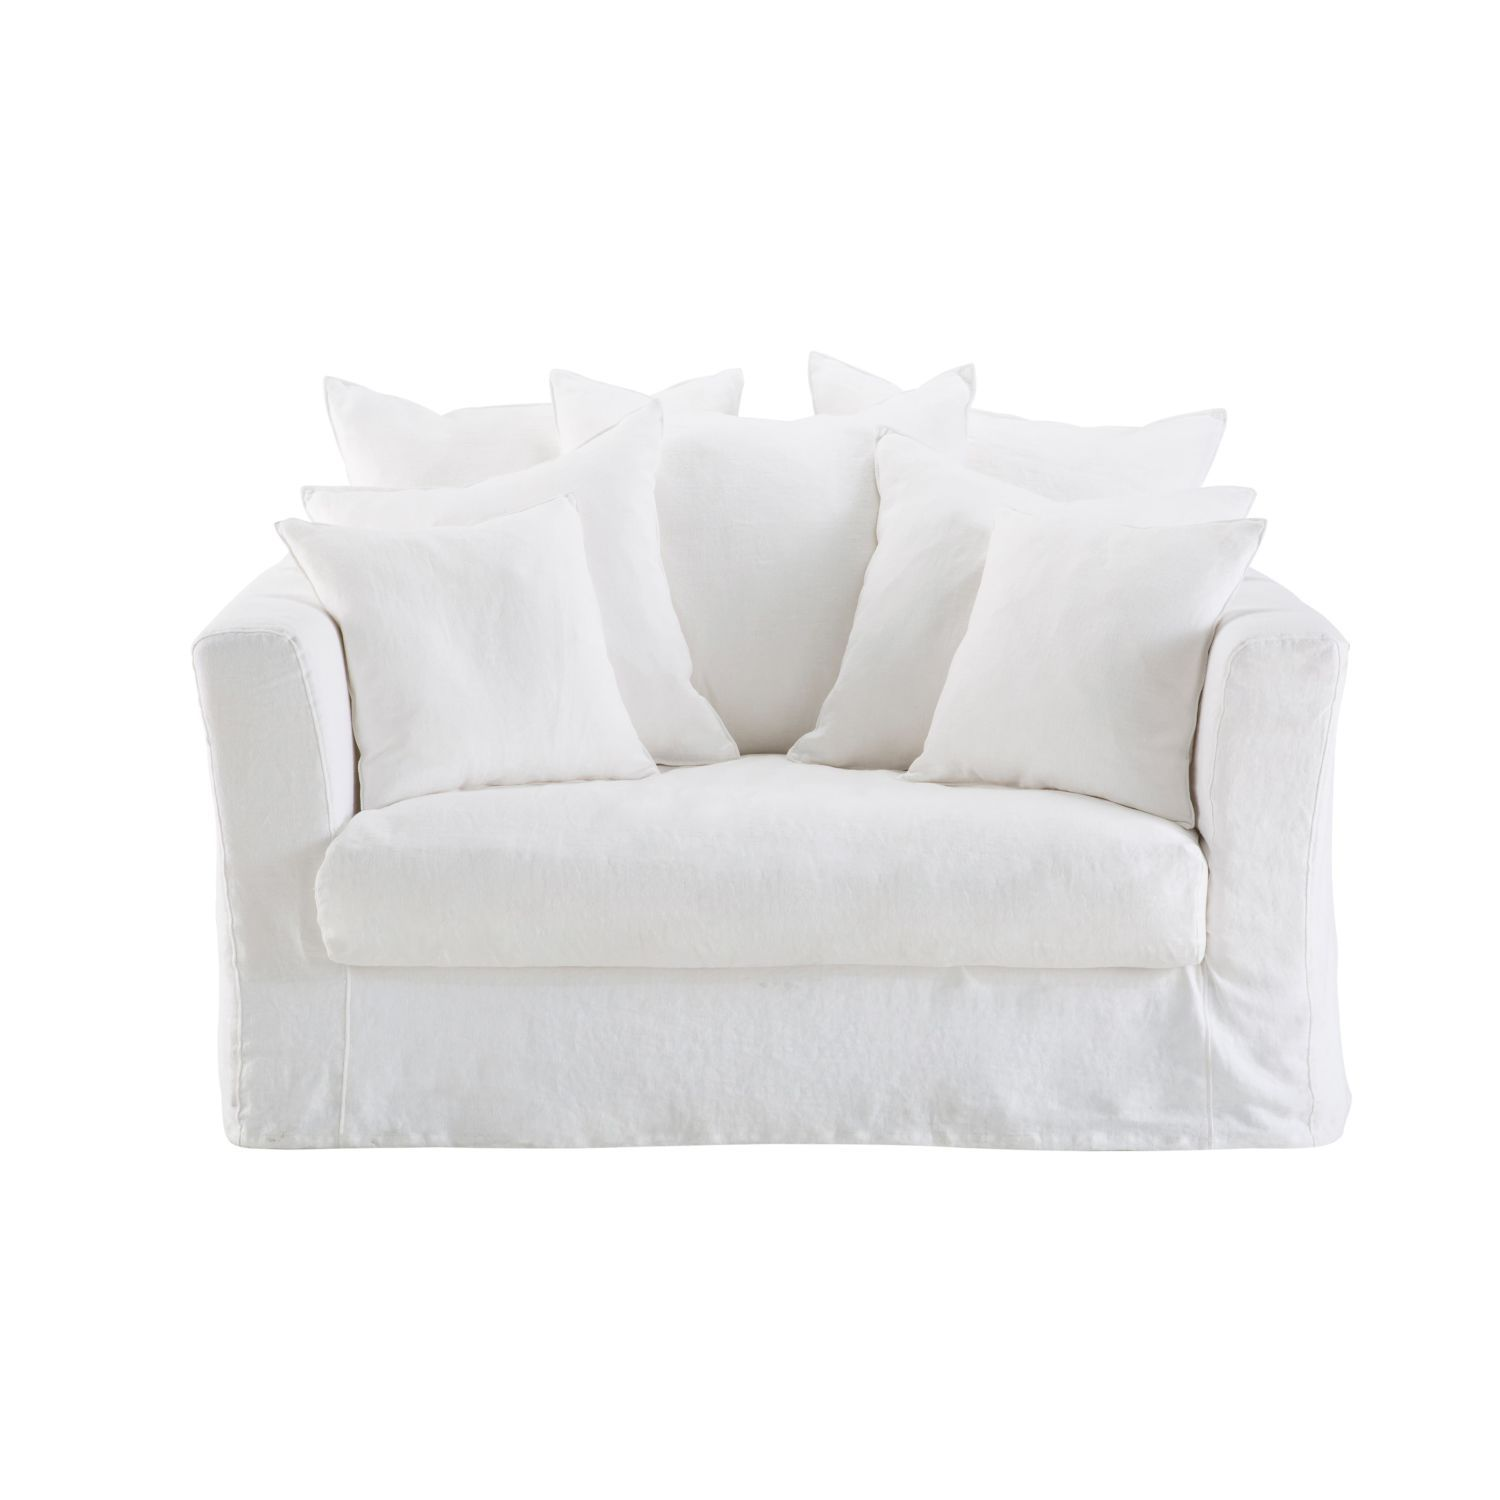 Does The Bartholome White Linen 1 2 Seater Sofa Bed Not Just Make You Want To Snuggle Up In Its Cushions The Epi Lit Maison Du Monde Canape Profond Canape Lit